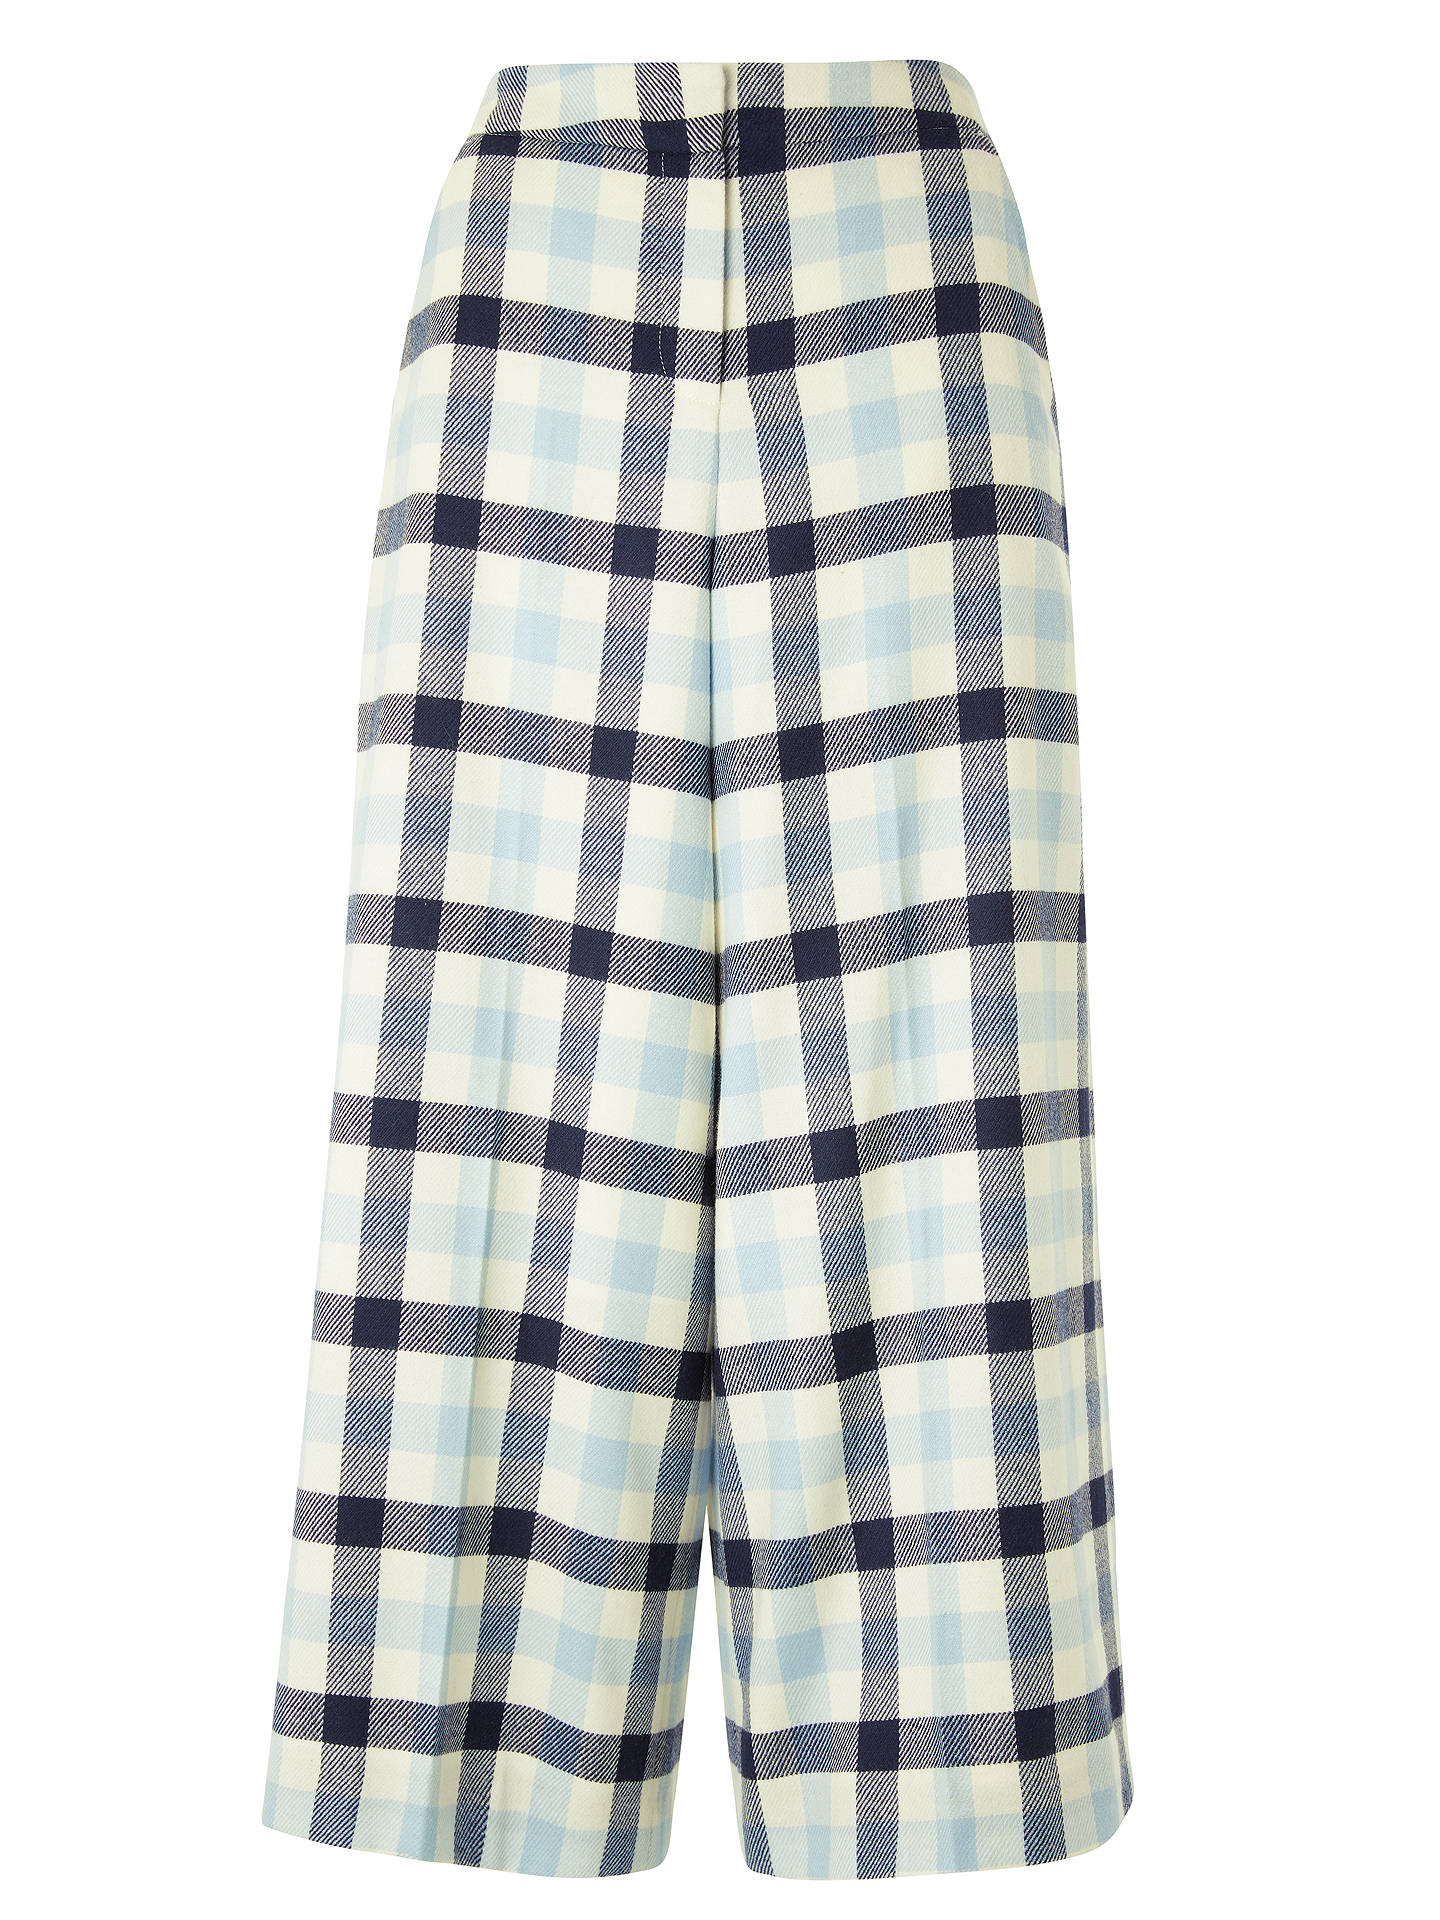 Boden Tweed Check Culotte Trousers Ivory Navy Breeze At John Lewis Tendencies Chinos Short 28 Buyboden 10 Online